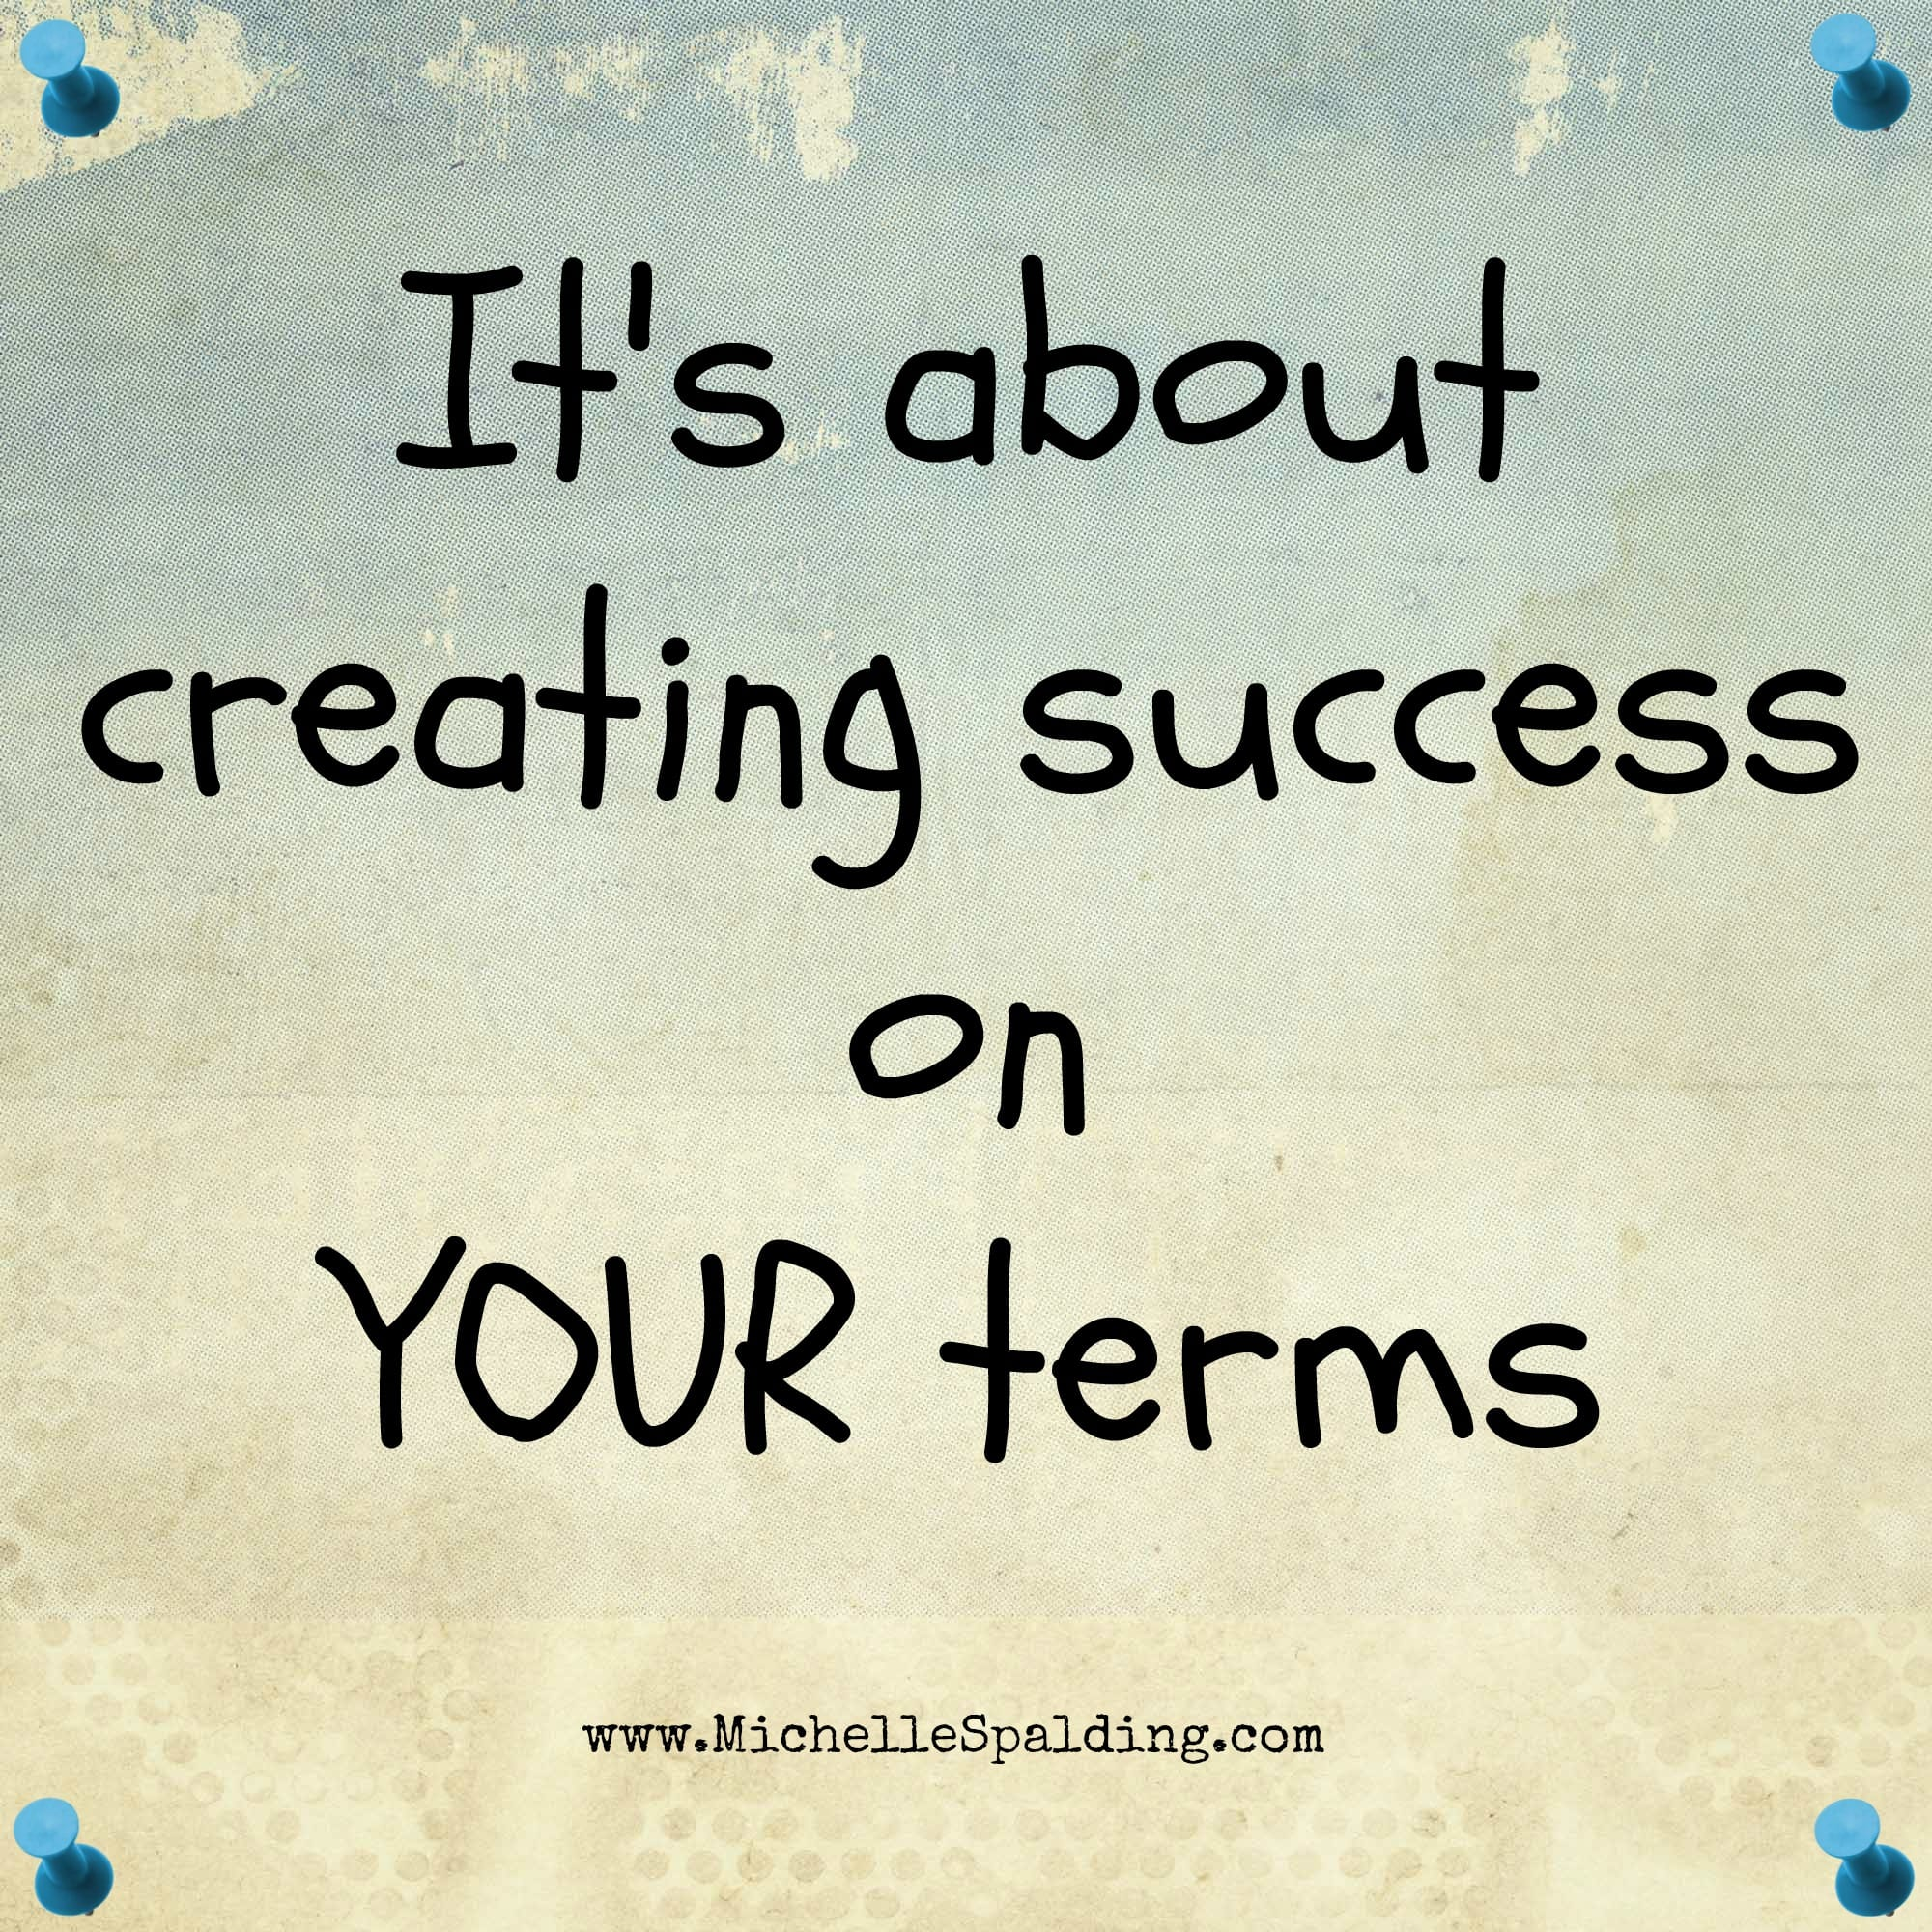 It's about creating success on YOUR terms